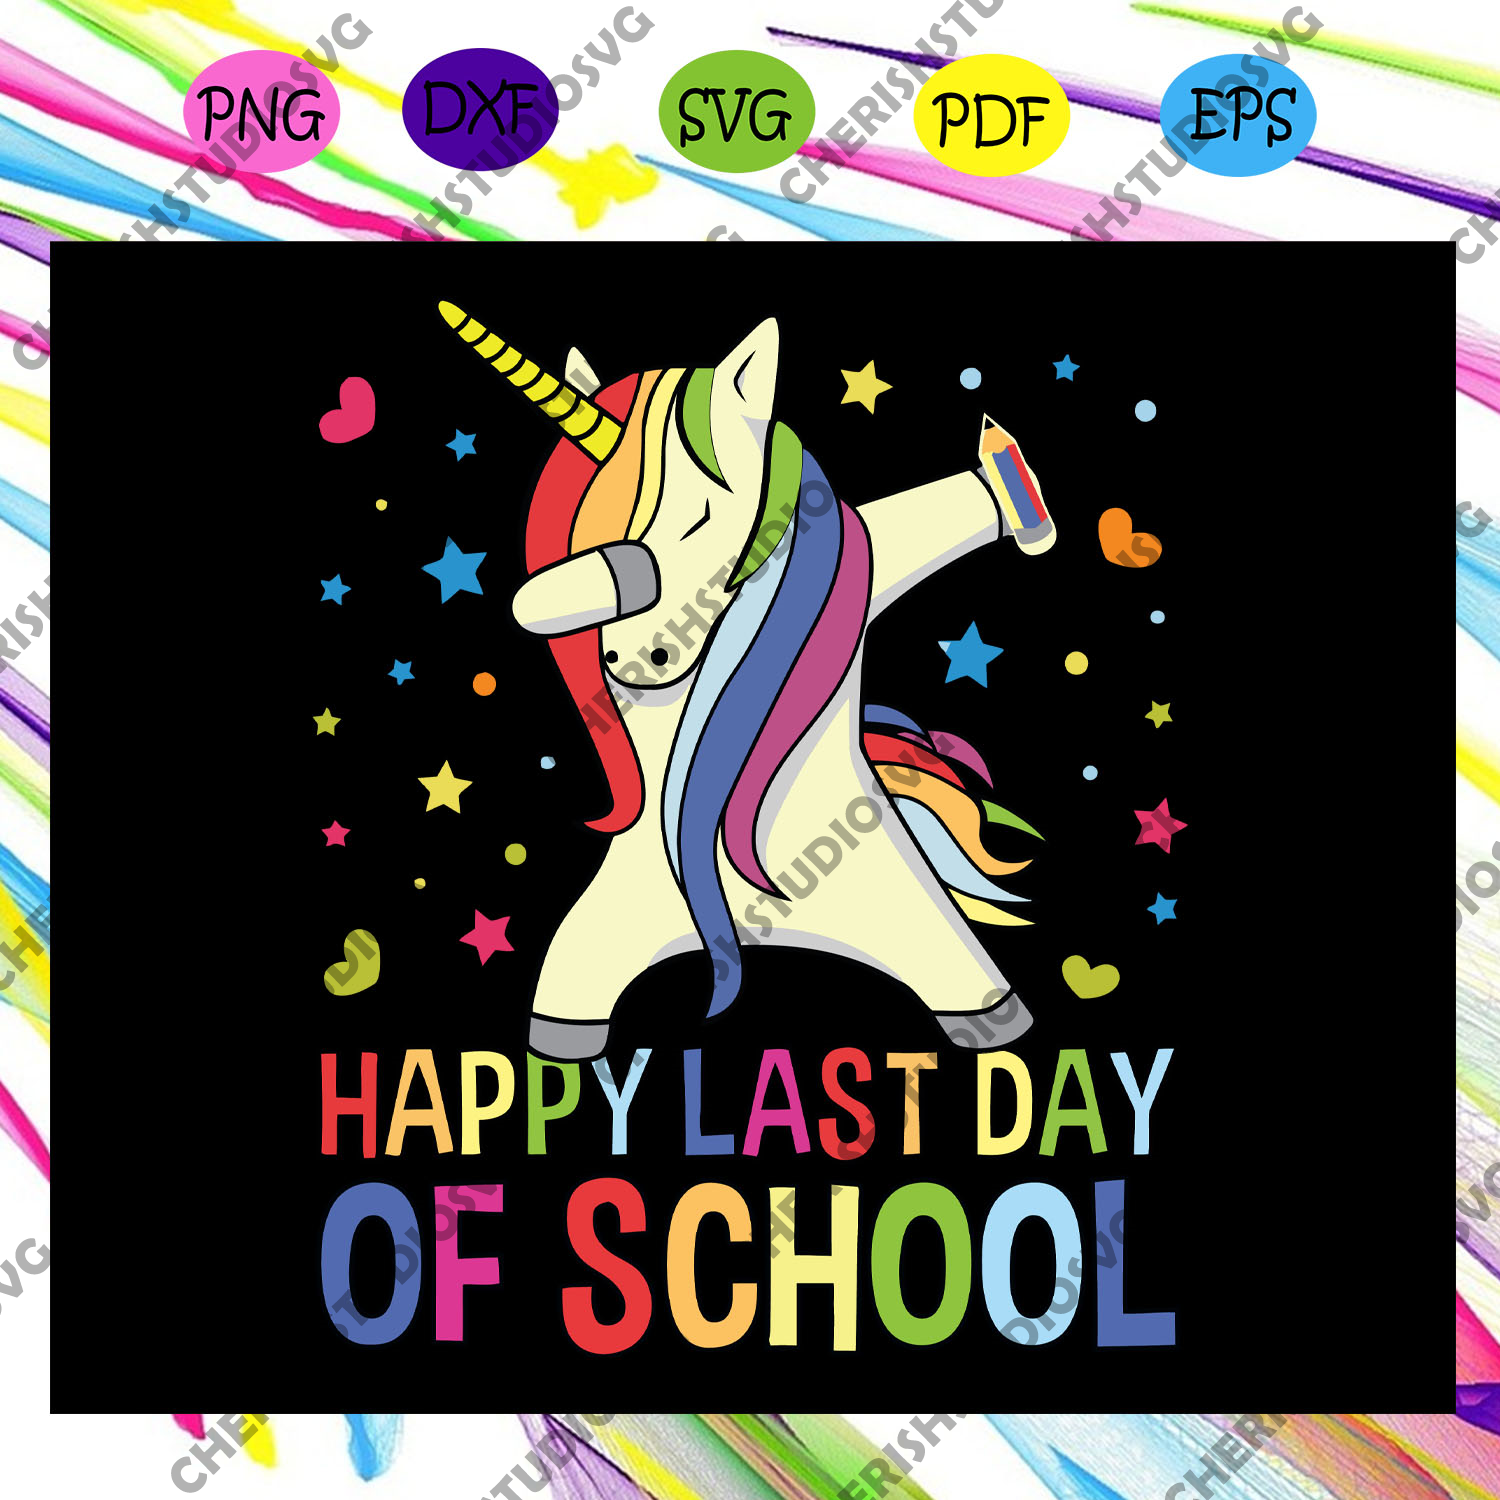 Happy Last day of school, graduate svg, school svg, last day of school, 2032 graduate svg, end of school svg, Files For Silhouette, Files For Cricut, SVG, DXF, EPS, PNG, Instant Download